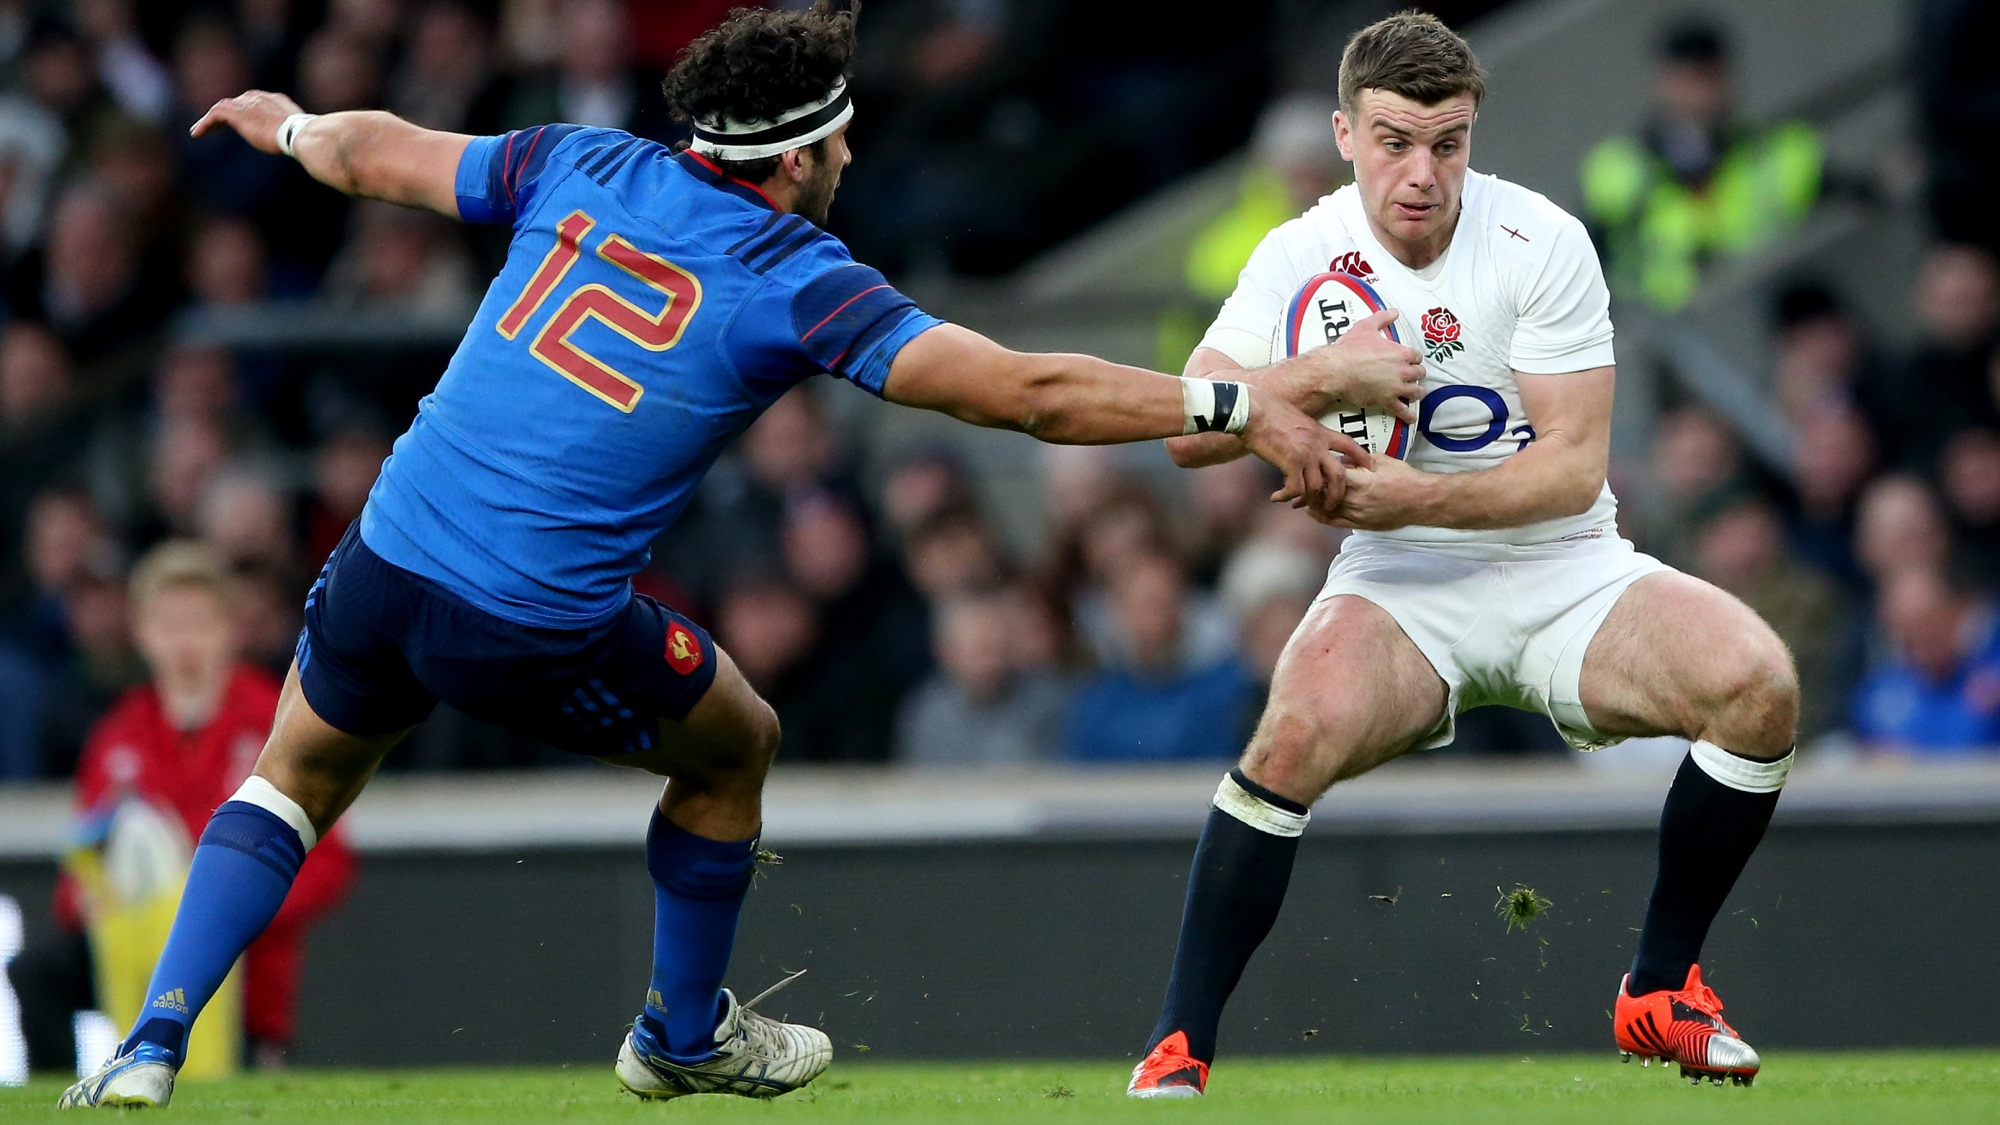 Man behind the Match: Ford and England fall just short on 2015 Super Saturday